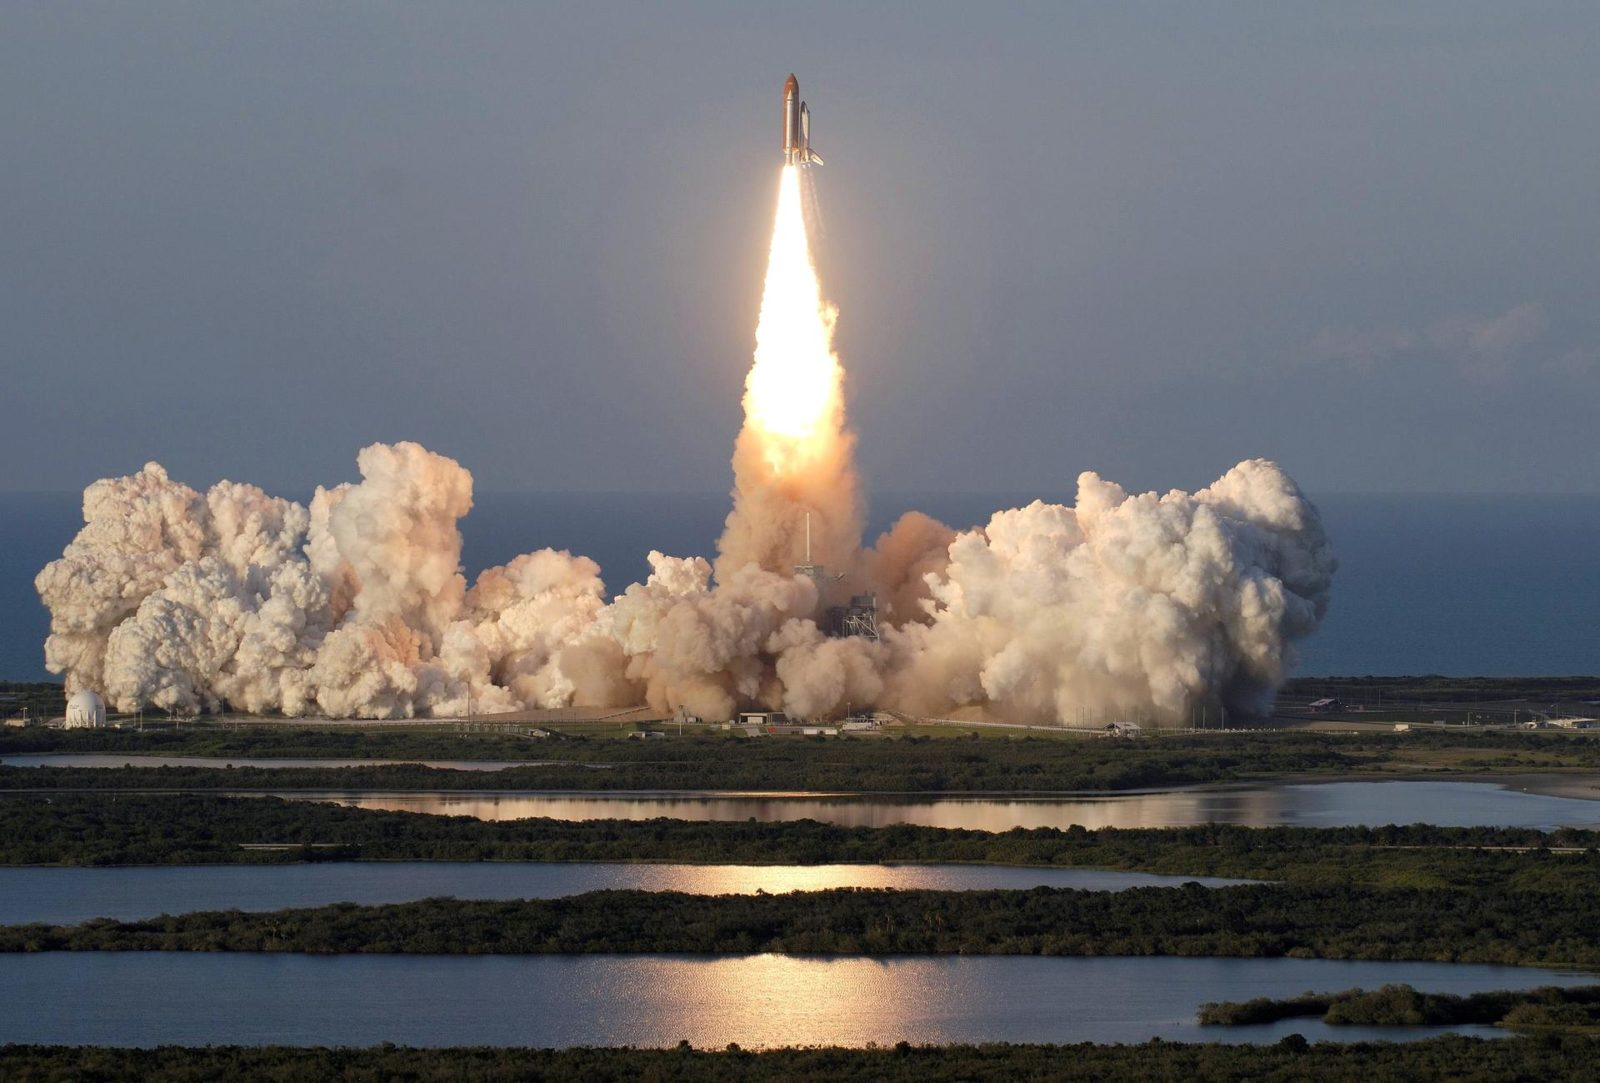 """STS117-S-019 (8 June 2007) --- The Space Shuttle Atlantis and its seven-member STS-117 crew head toward Earth-orbit and a scheduled link-up with the International Space Station. Liftoff from Kennedy Space Center's launch pad 39A occurred at 7:38 p.m. (EDT) on June 8, 2007. Onboard are astronauts Rick Sturckow, commander; Lee Archambault, pilot; Jim Reilly, Patrick Forrester, John """"Danny"""" Olivas, Steven Swanson and Clayton Anderson, all mission specialists. Anderson will join Expedition 15 in progress to serve as a flight engineer aboard the station. Atlantis will dock with the orbital outpost on Sunday, June 10, to begin a joint mission that will increase the complex's power generation capability. Using the shuttle and station robotic arms and conducting three scheduled spacewalks, the astronauts will install another set of giant solar array wings on the station and retract another array, preparing it for a future move. STS117-S-019"""